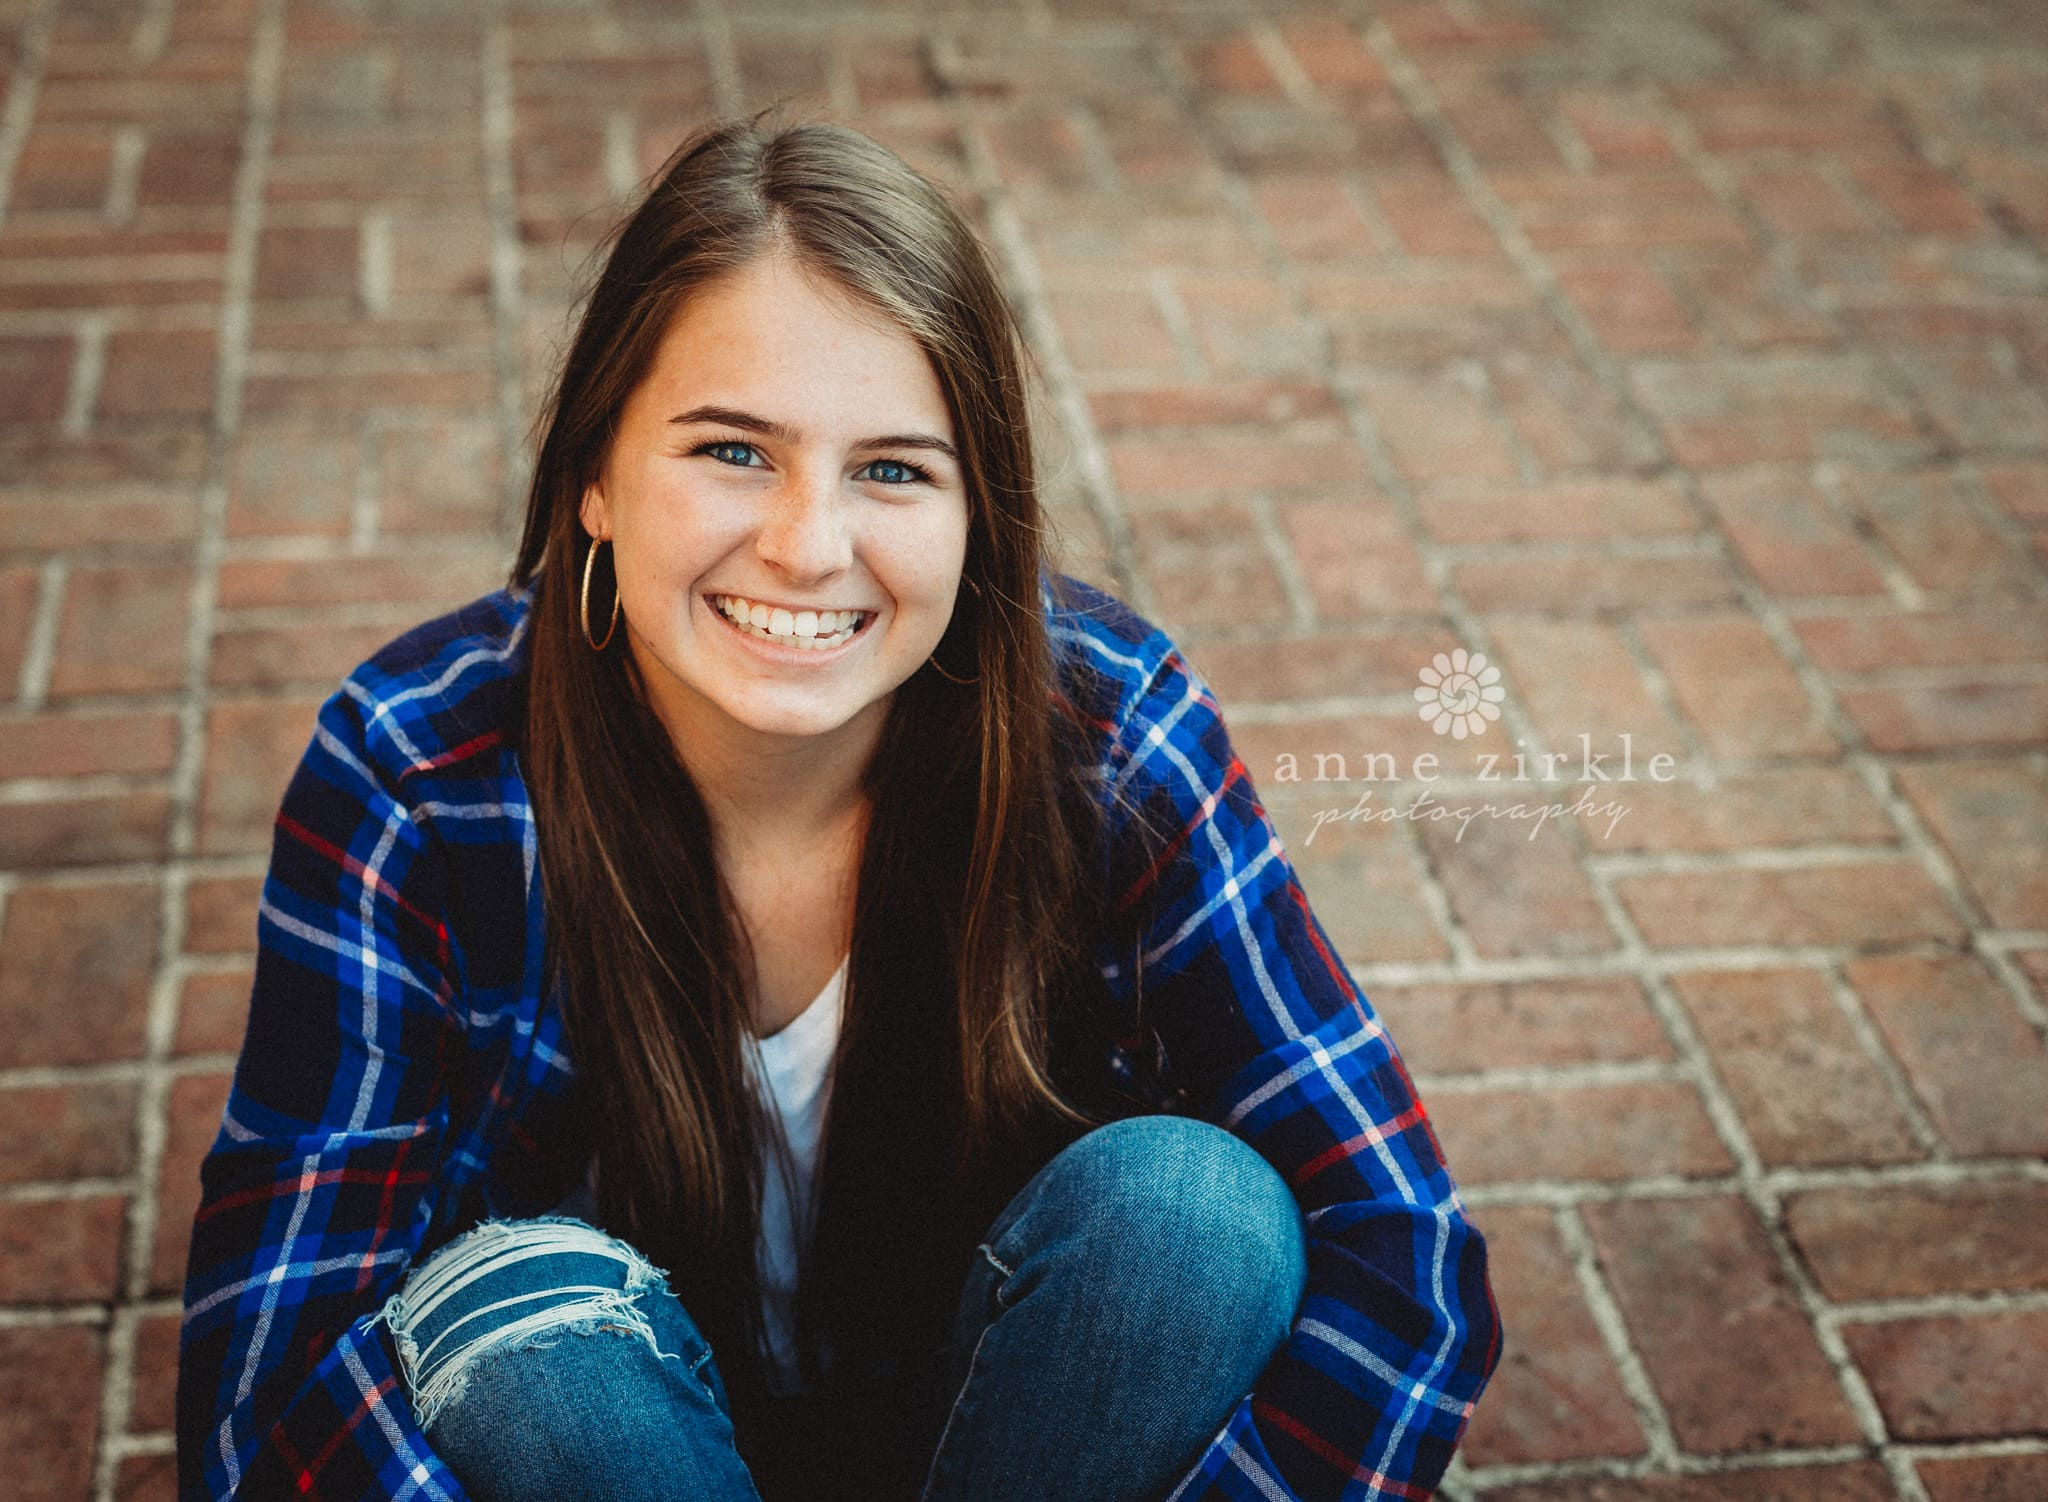 Senior girl sitting on brick walkway #mooresville #northcarolina #davidson #lakenorman #southiredell #pinelakeprep #highschool #highschoolsenior #highschoolseniors #seniors